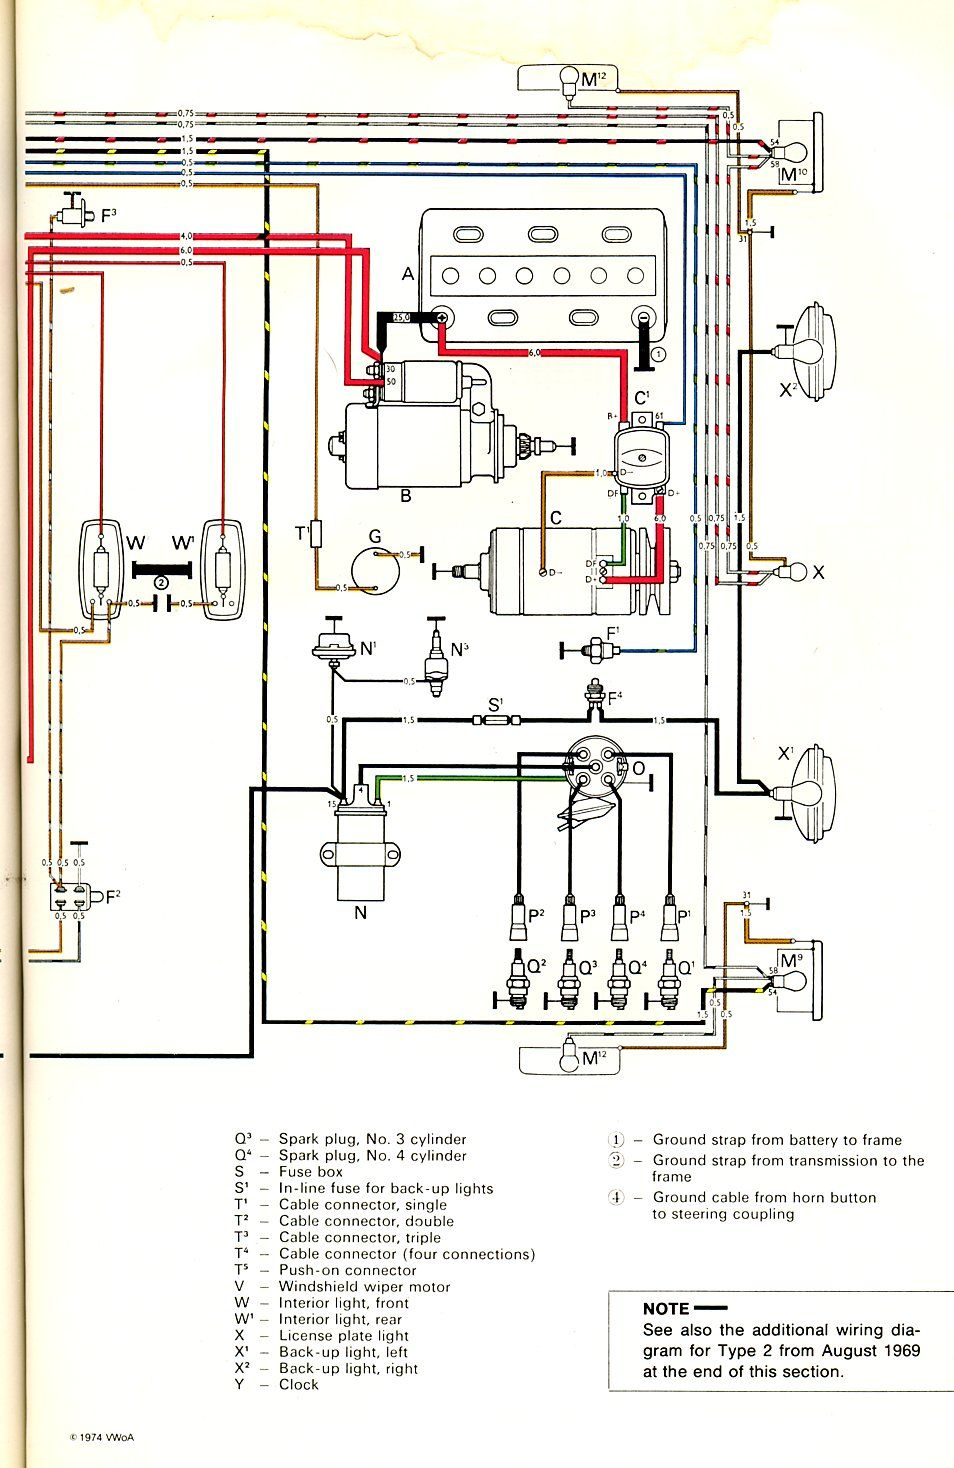 Electrical Wiring Drawing Vw Links In 2018 Pinterest Hvac Diagrams